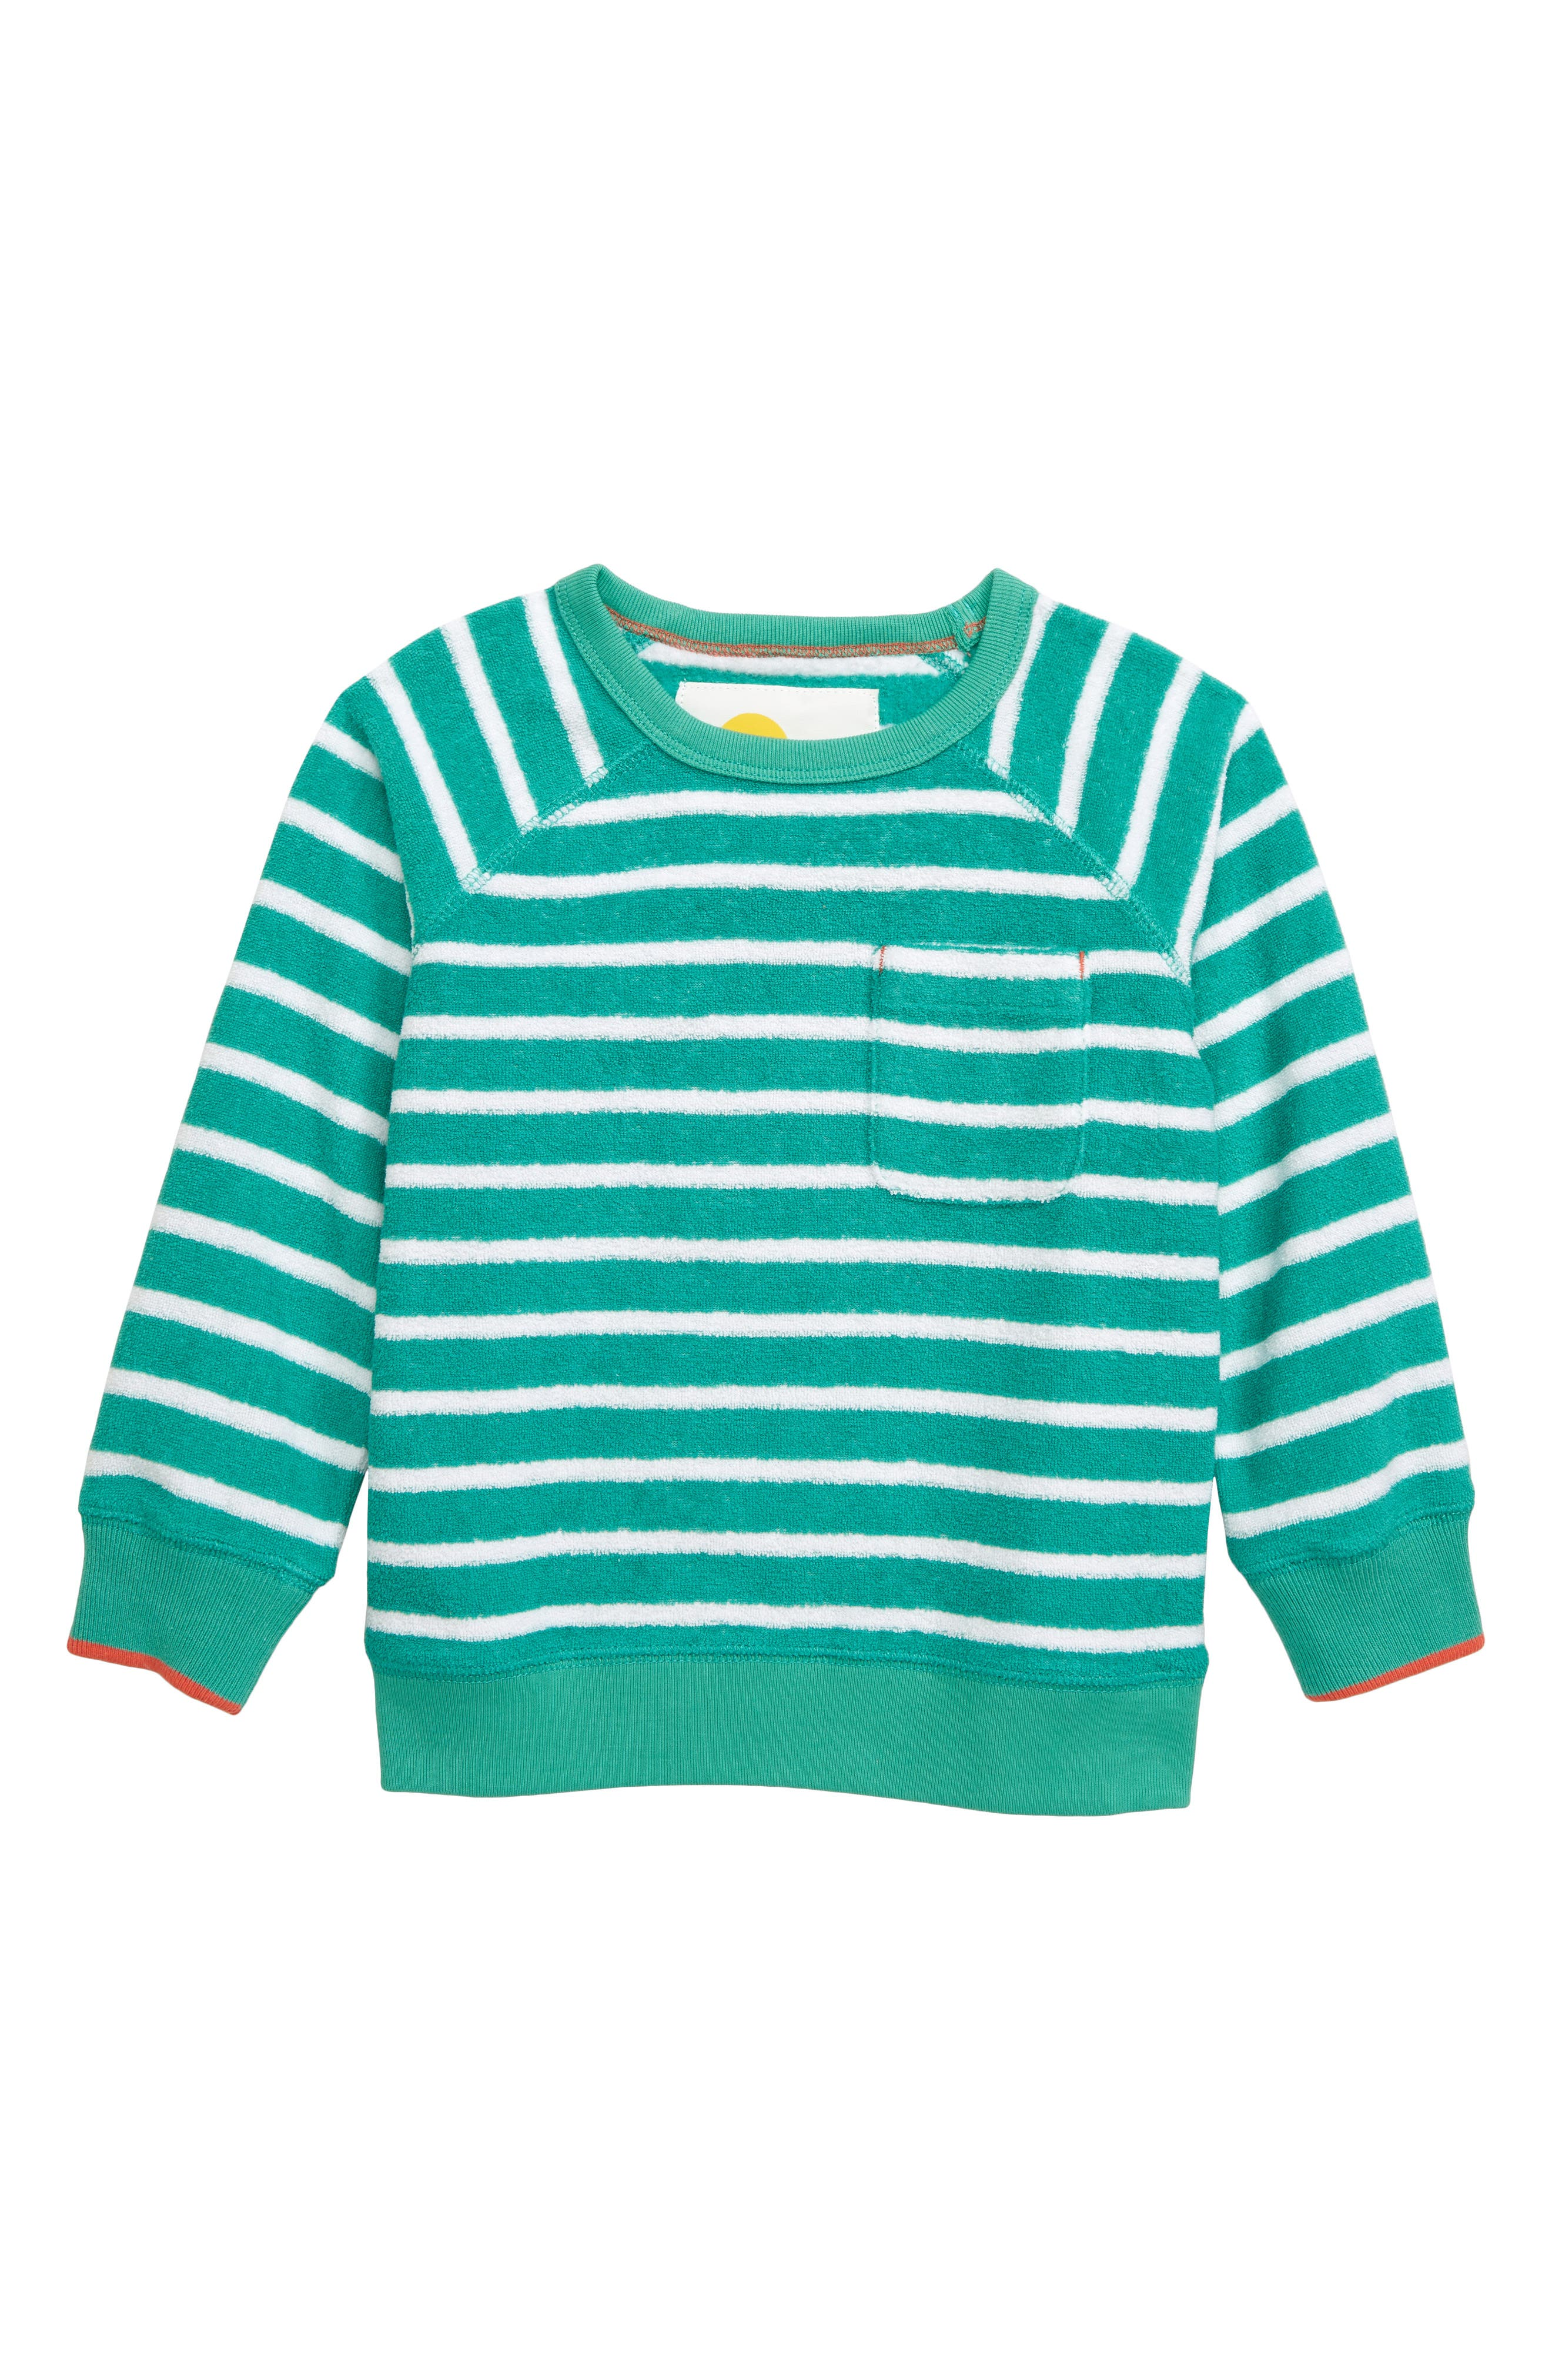 Towelling Sweatshirt, Main, color, JUNGLE GREEN/ WHITE